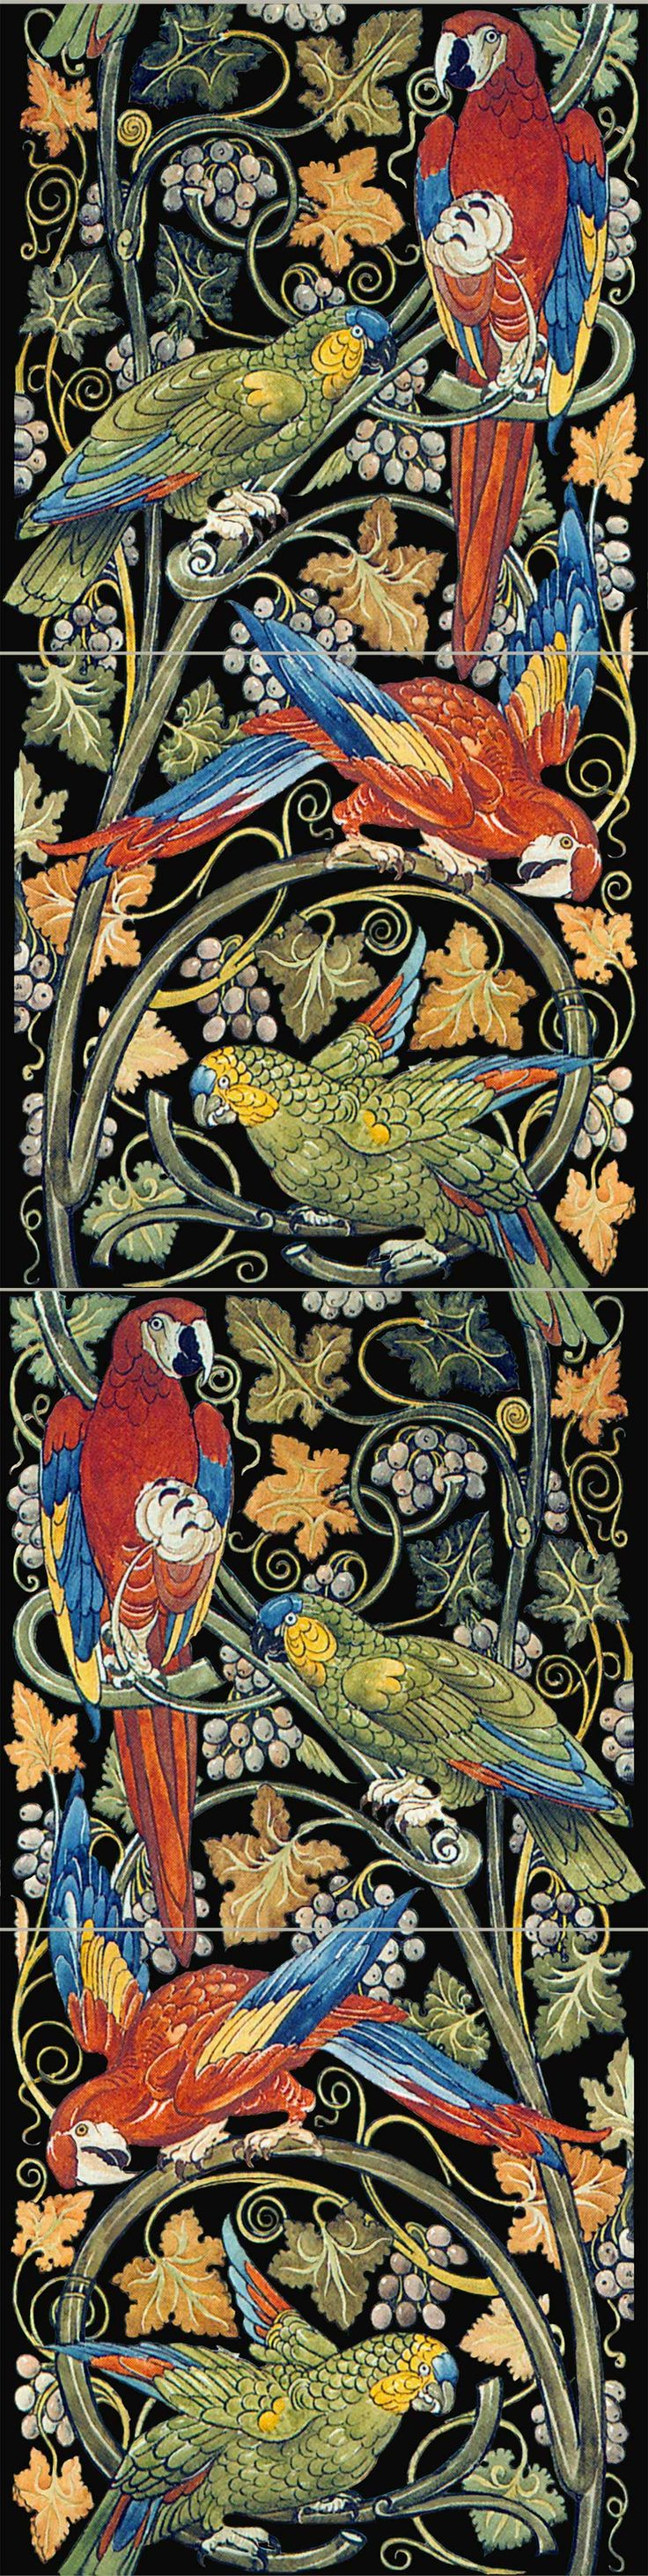 How to order William Morris Arts and Crafts Tile                                                                                                                                                                                 More